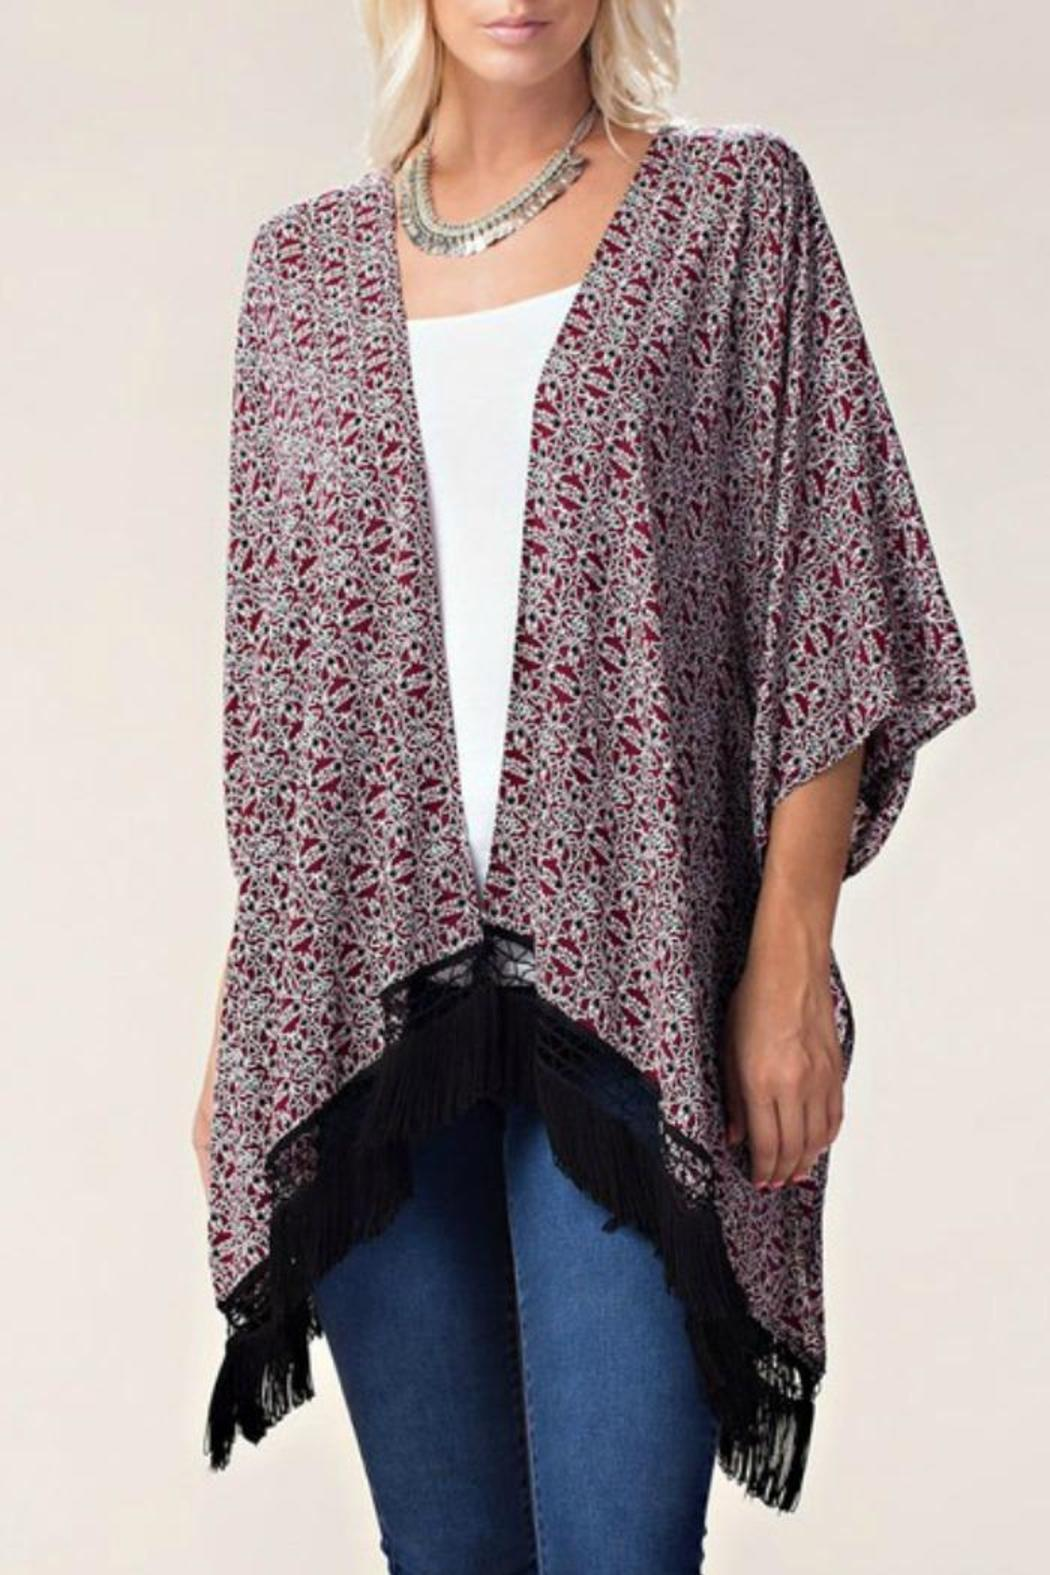 KORI AMERICA Fab and Flowy Kimono from Mississippi by Exit 16 ...